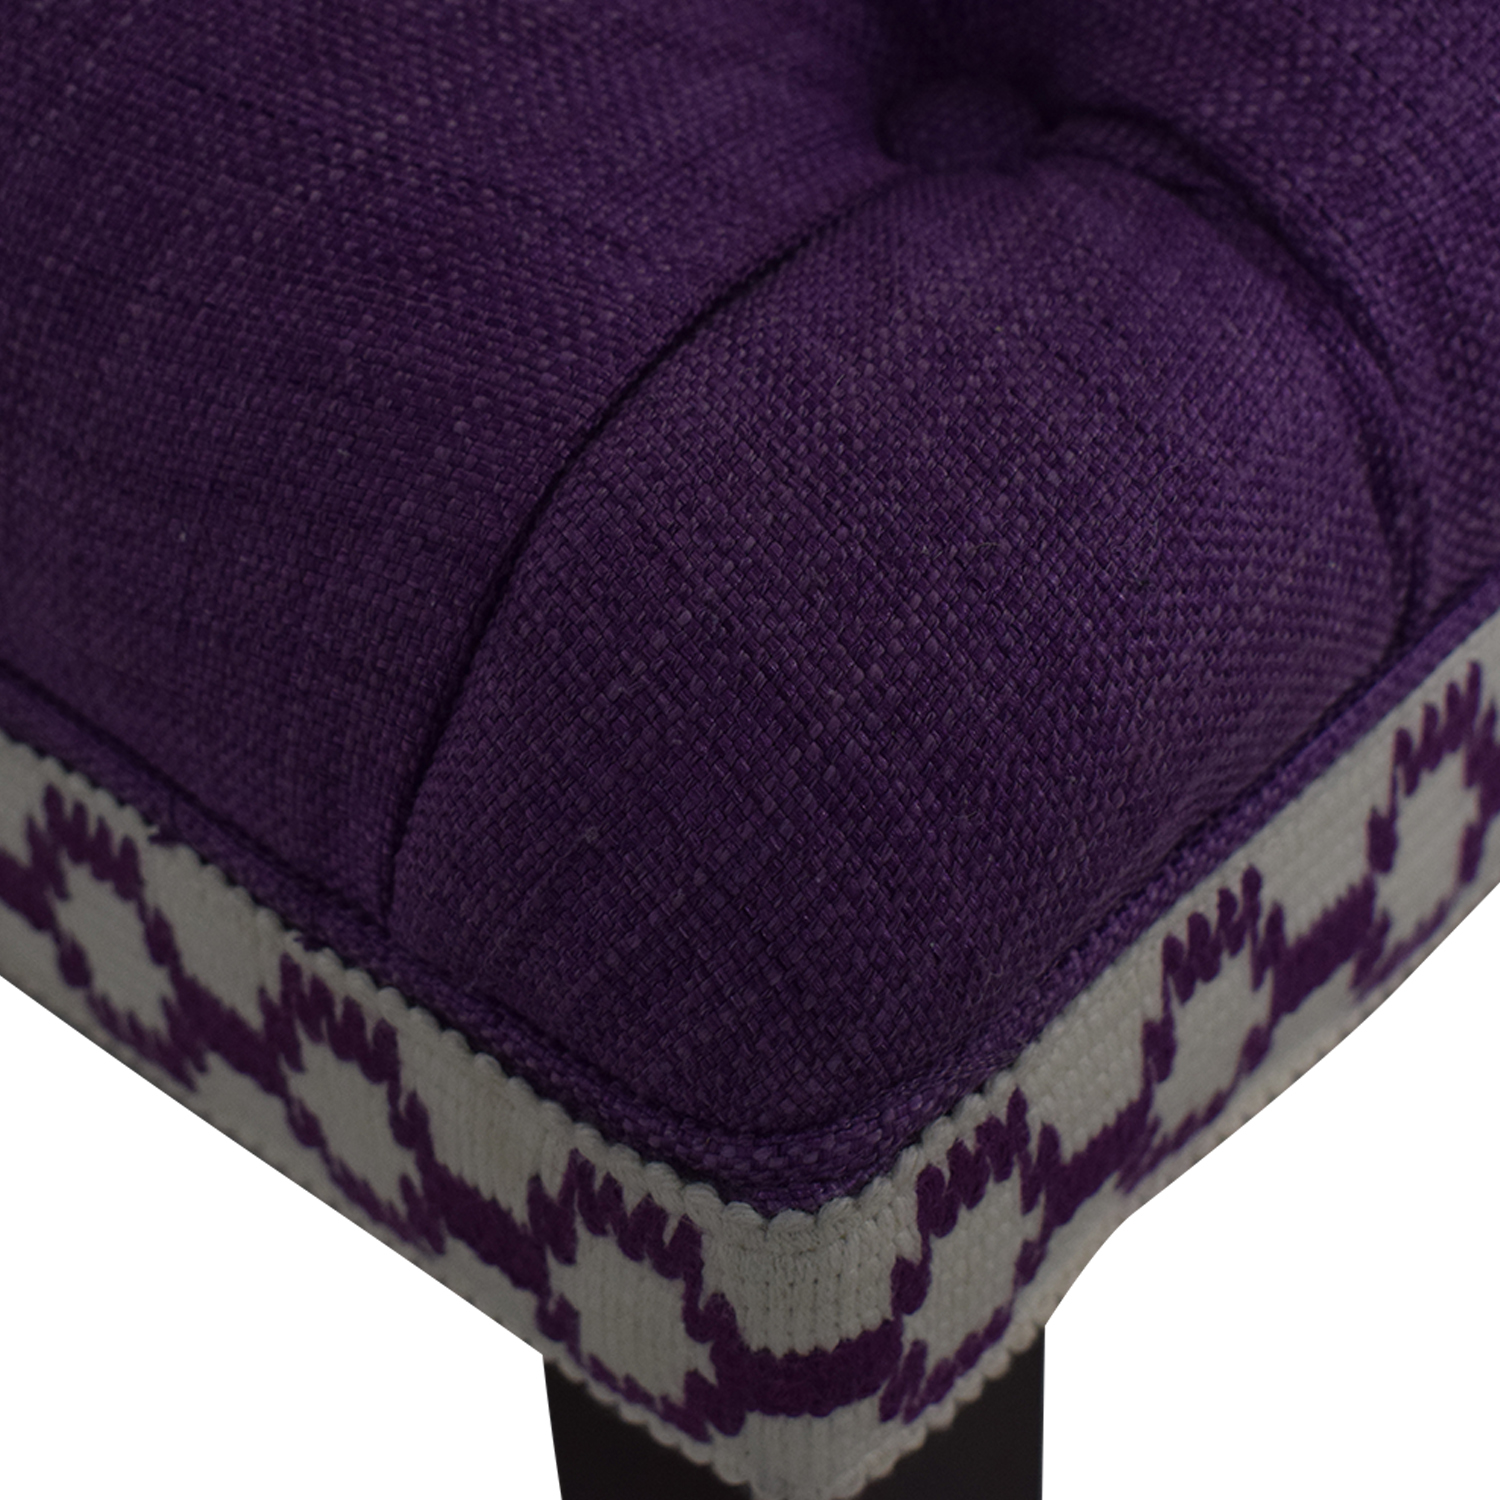 Home Goods Home Goods Purple Tufted Bench nj